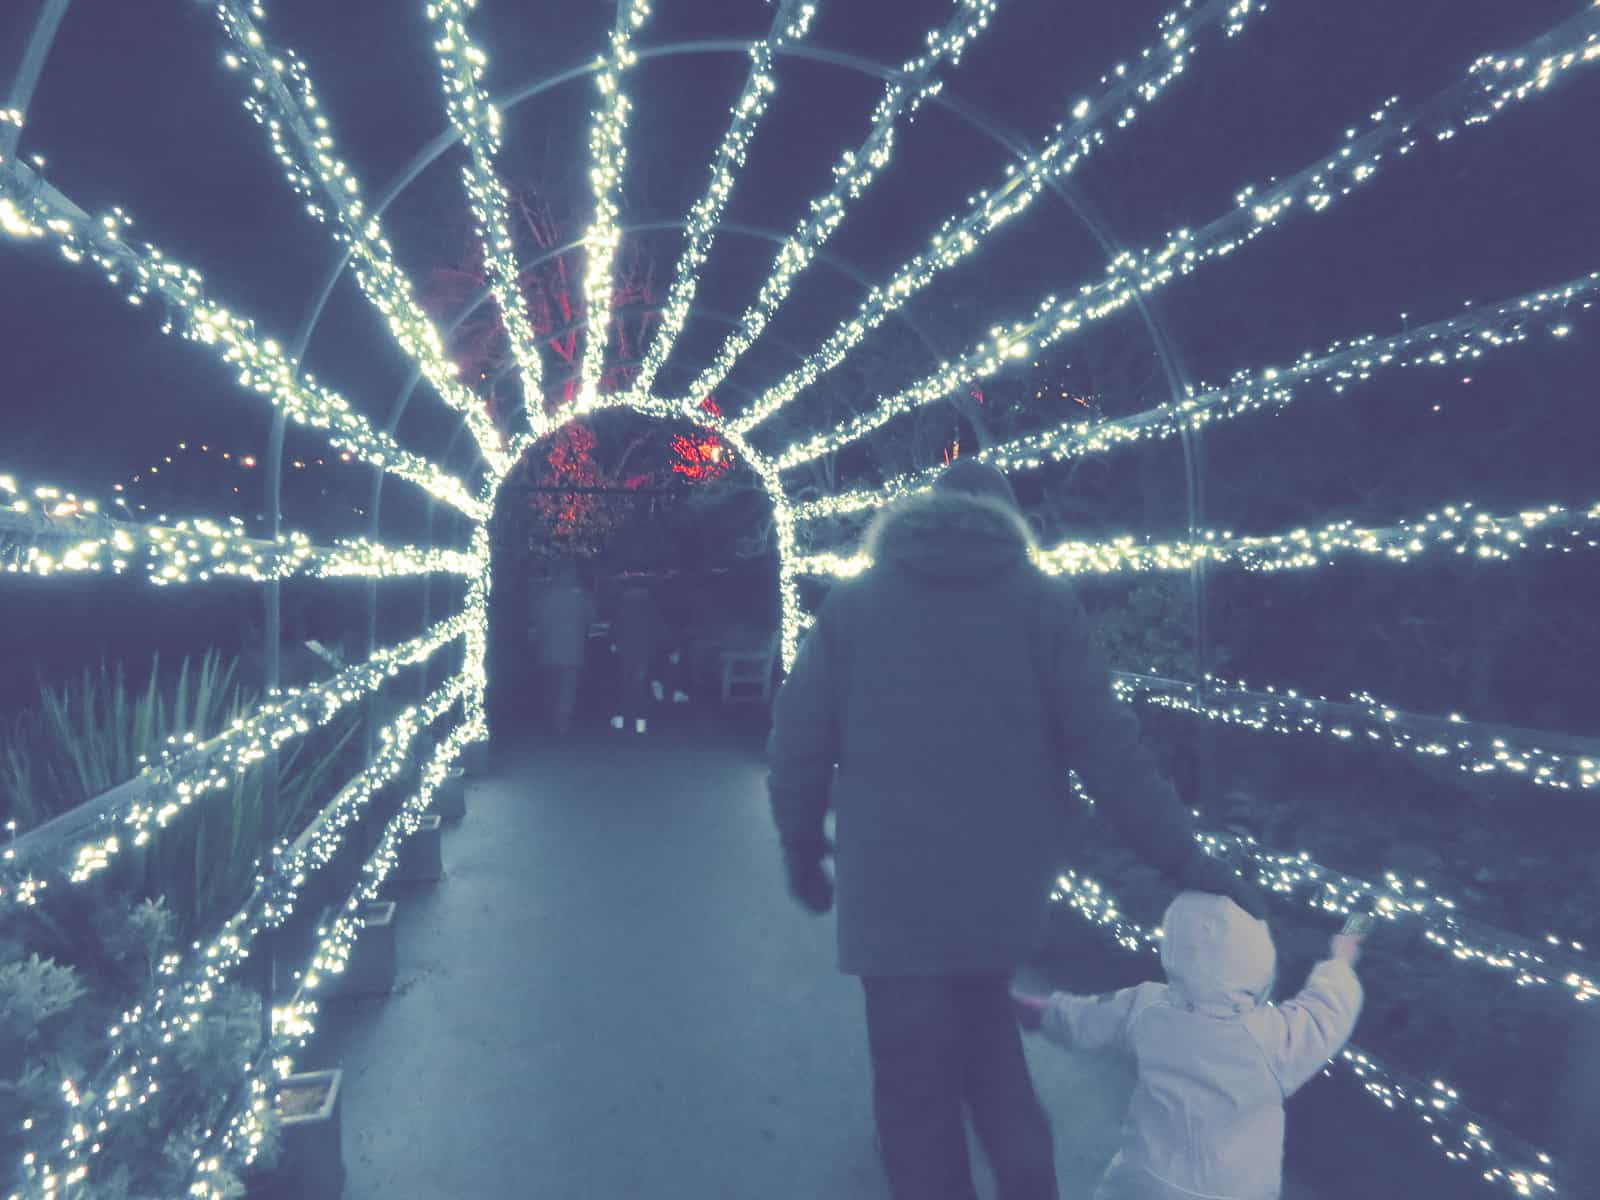 A dad and young daughter walking through an illuminated tunnel